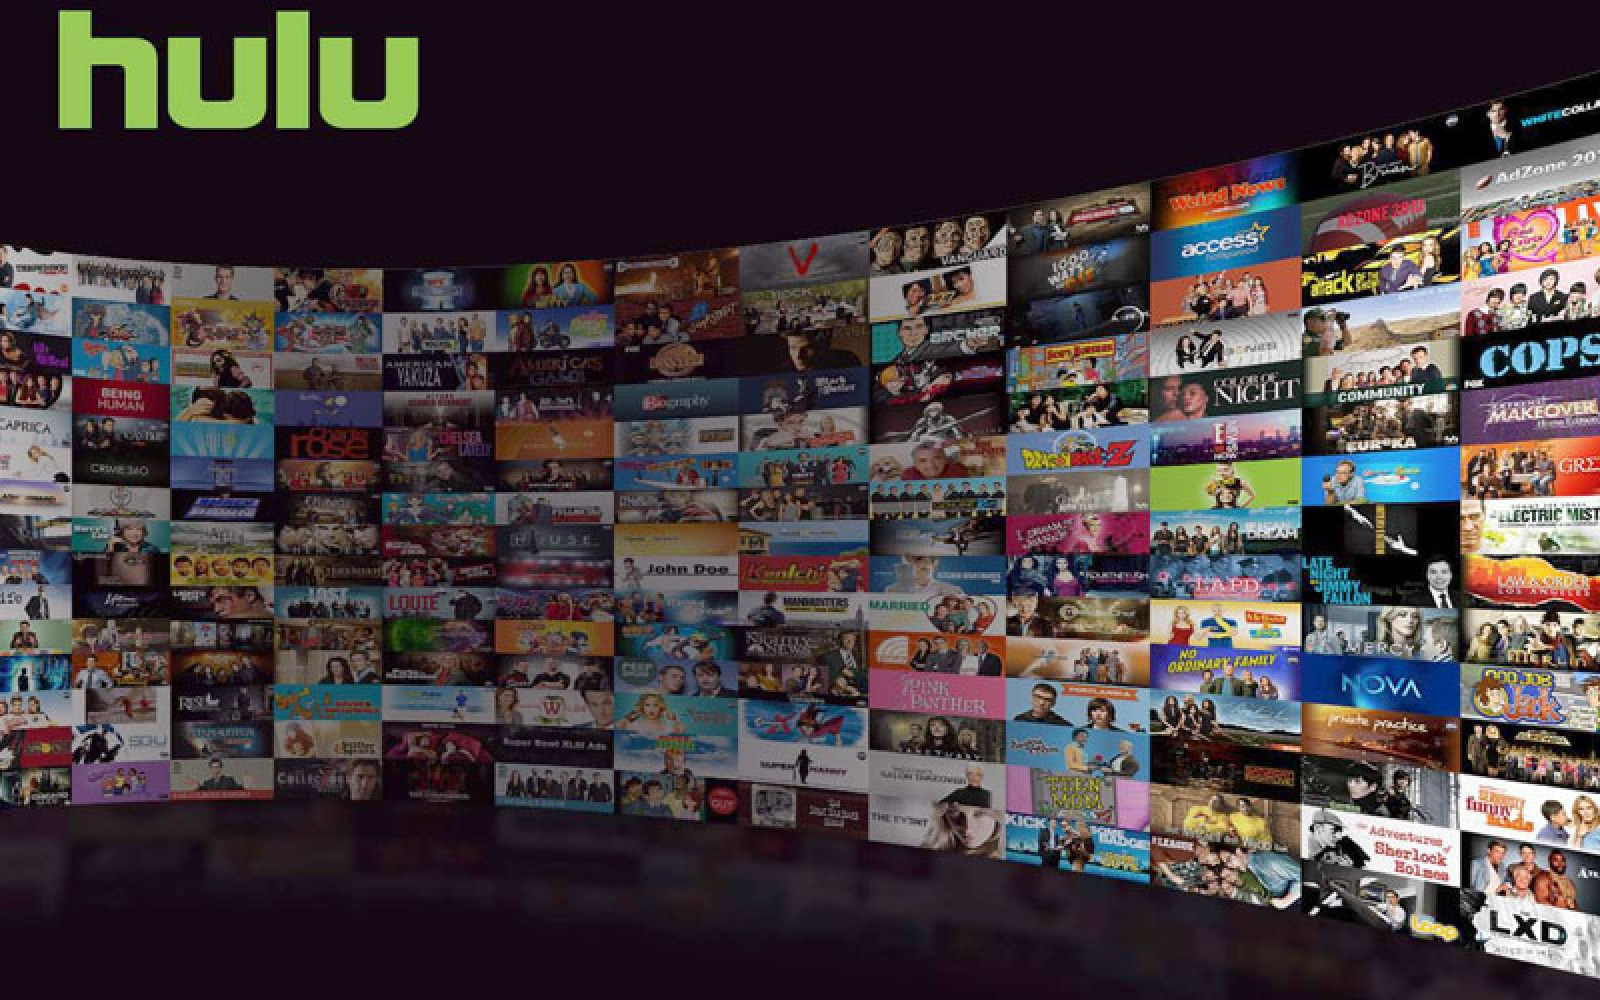 Hulu signs A+E Networks to its streaming TV service launching this spring for under $40/mo